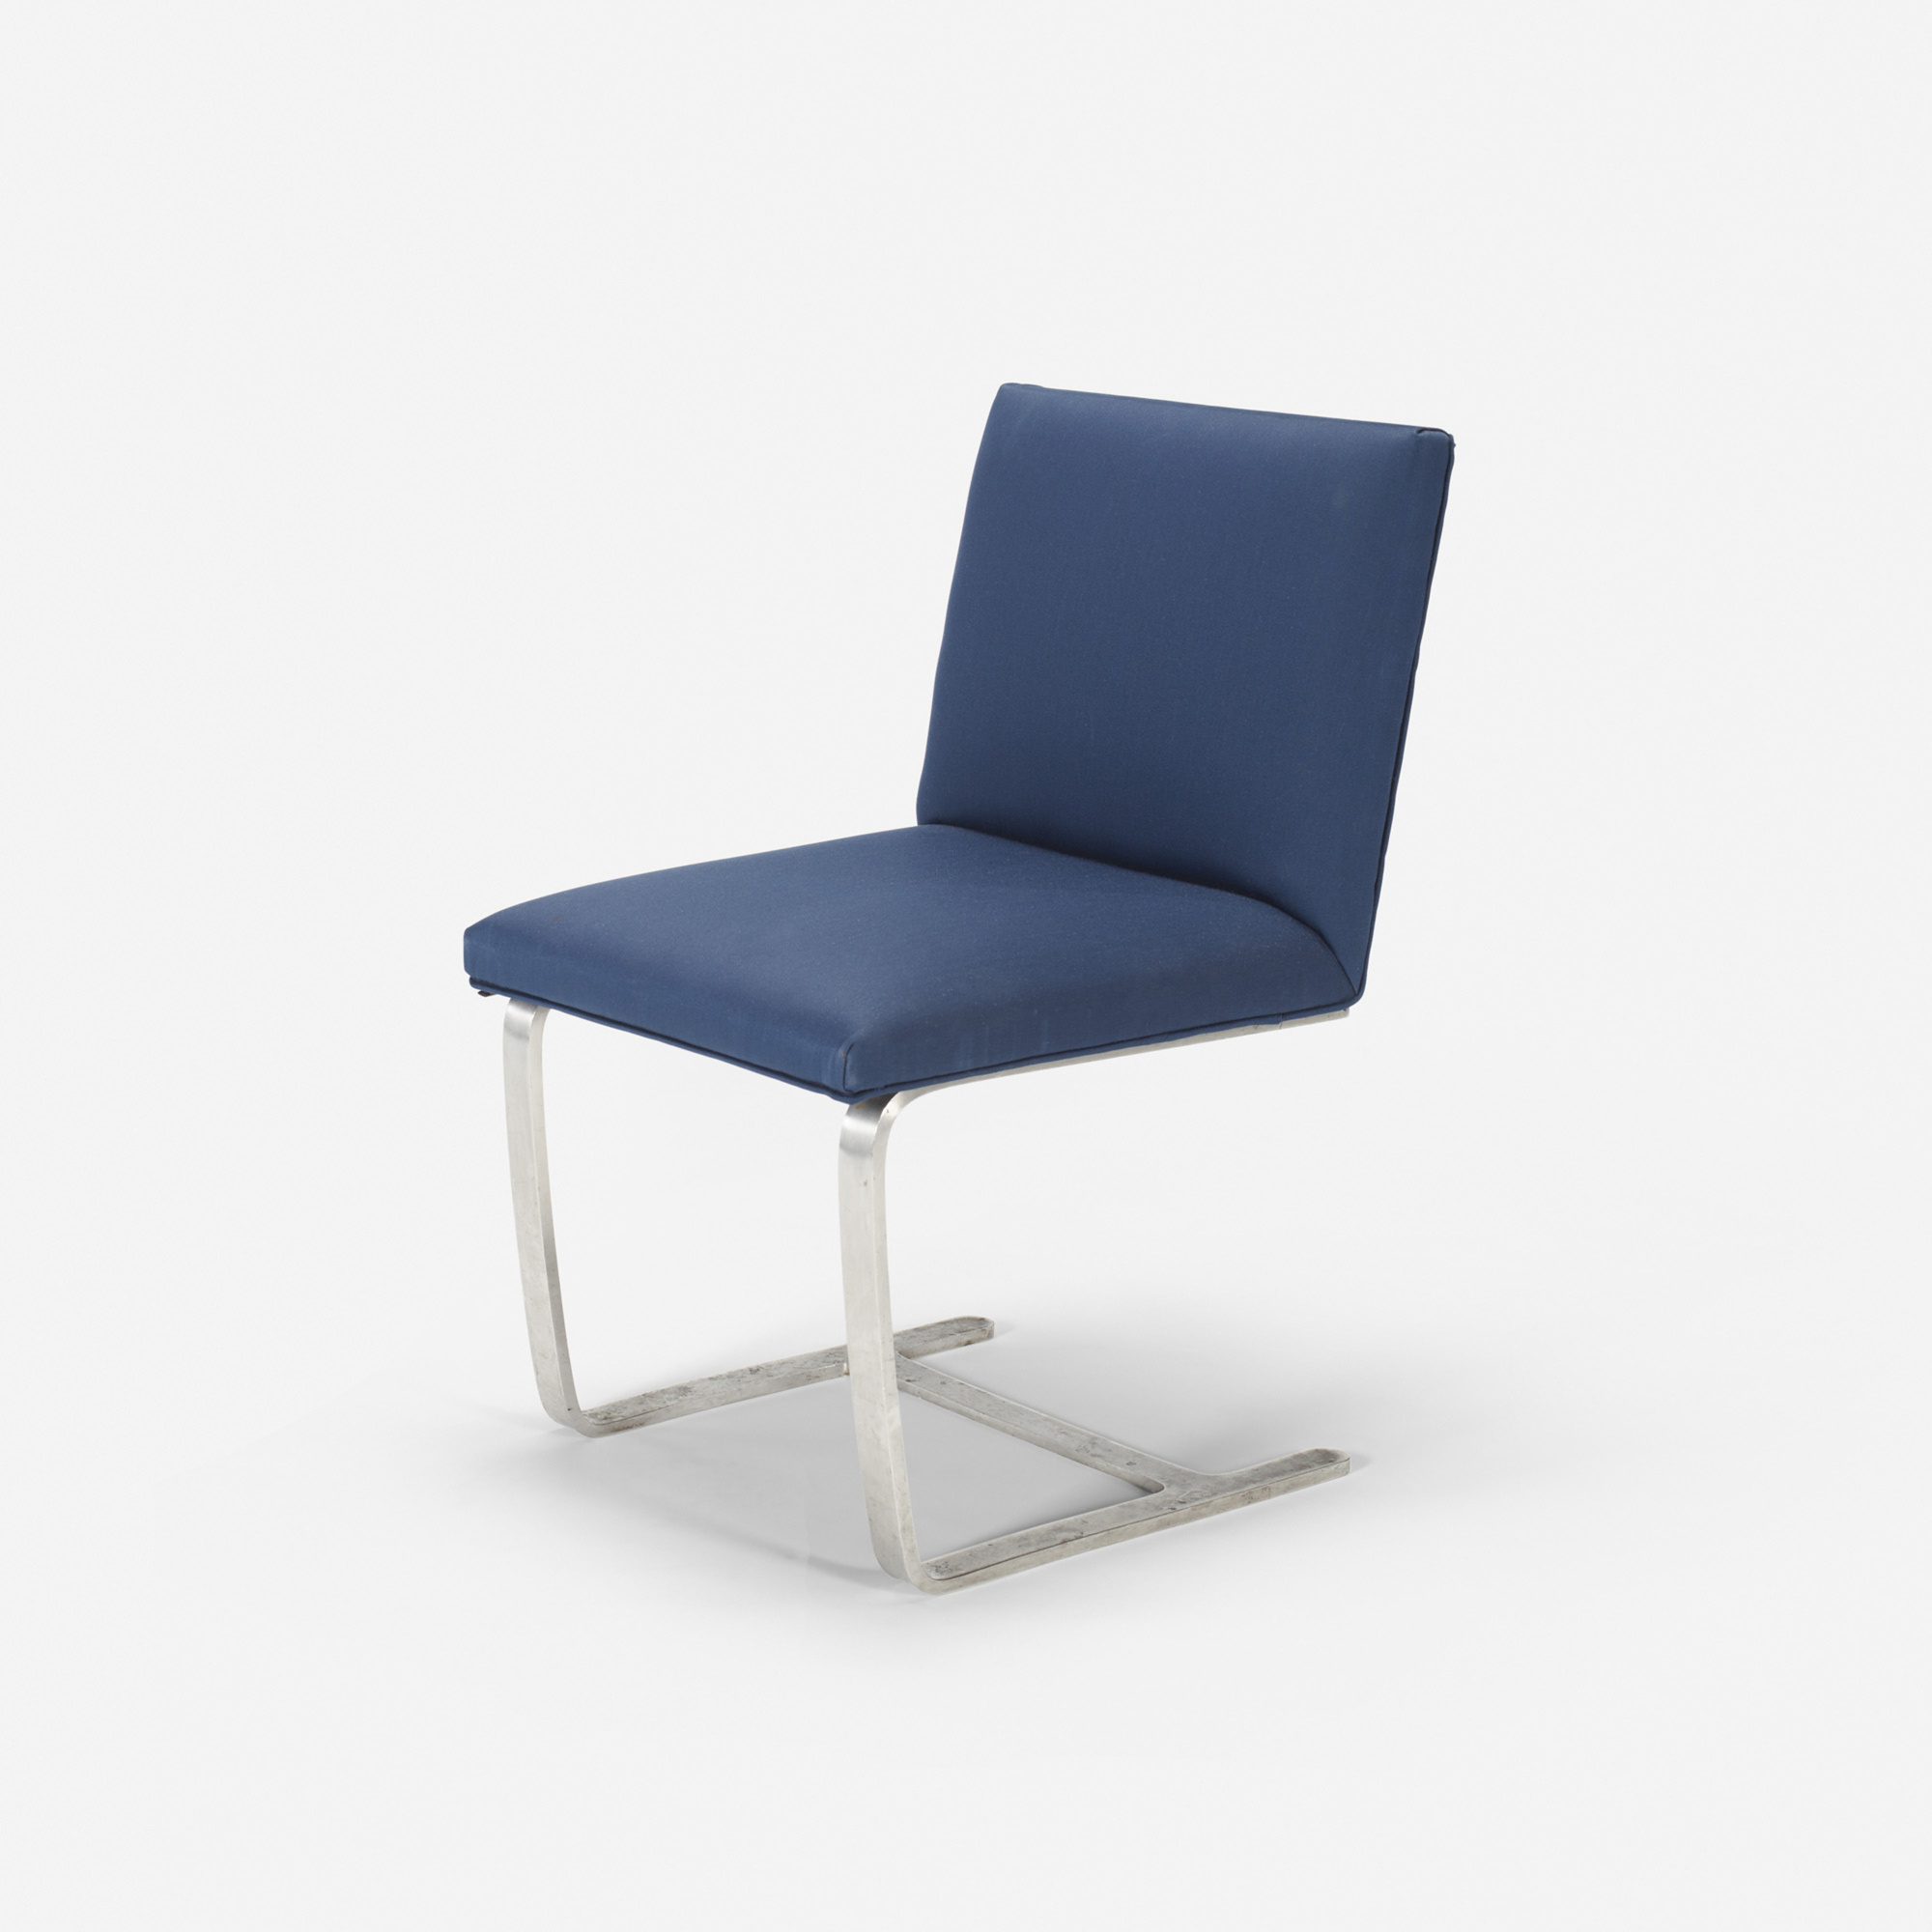 218 Ludwig Mies van der Rohe Custom Brno side chair from The